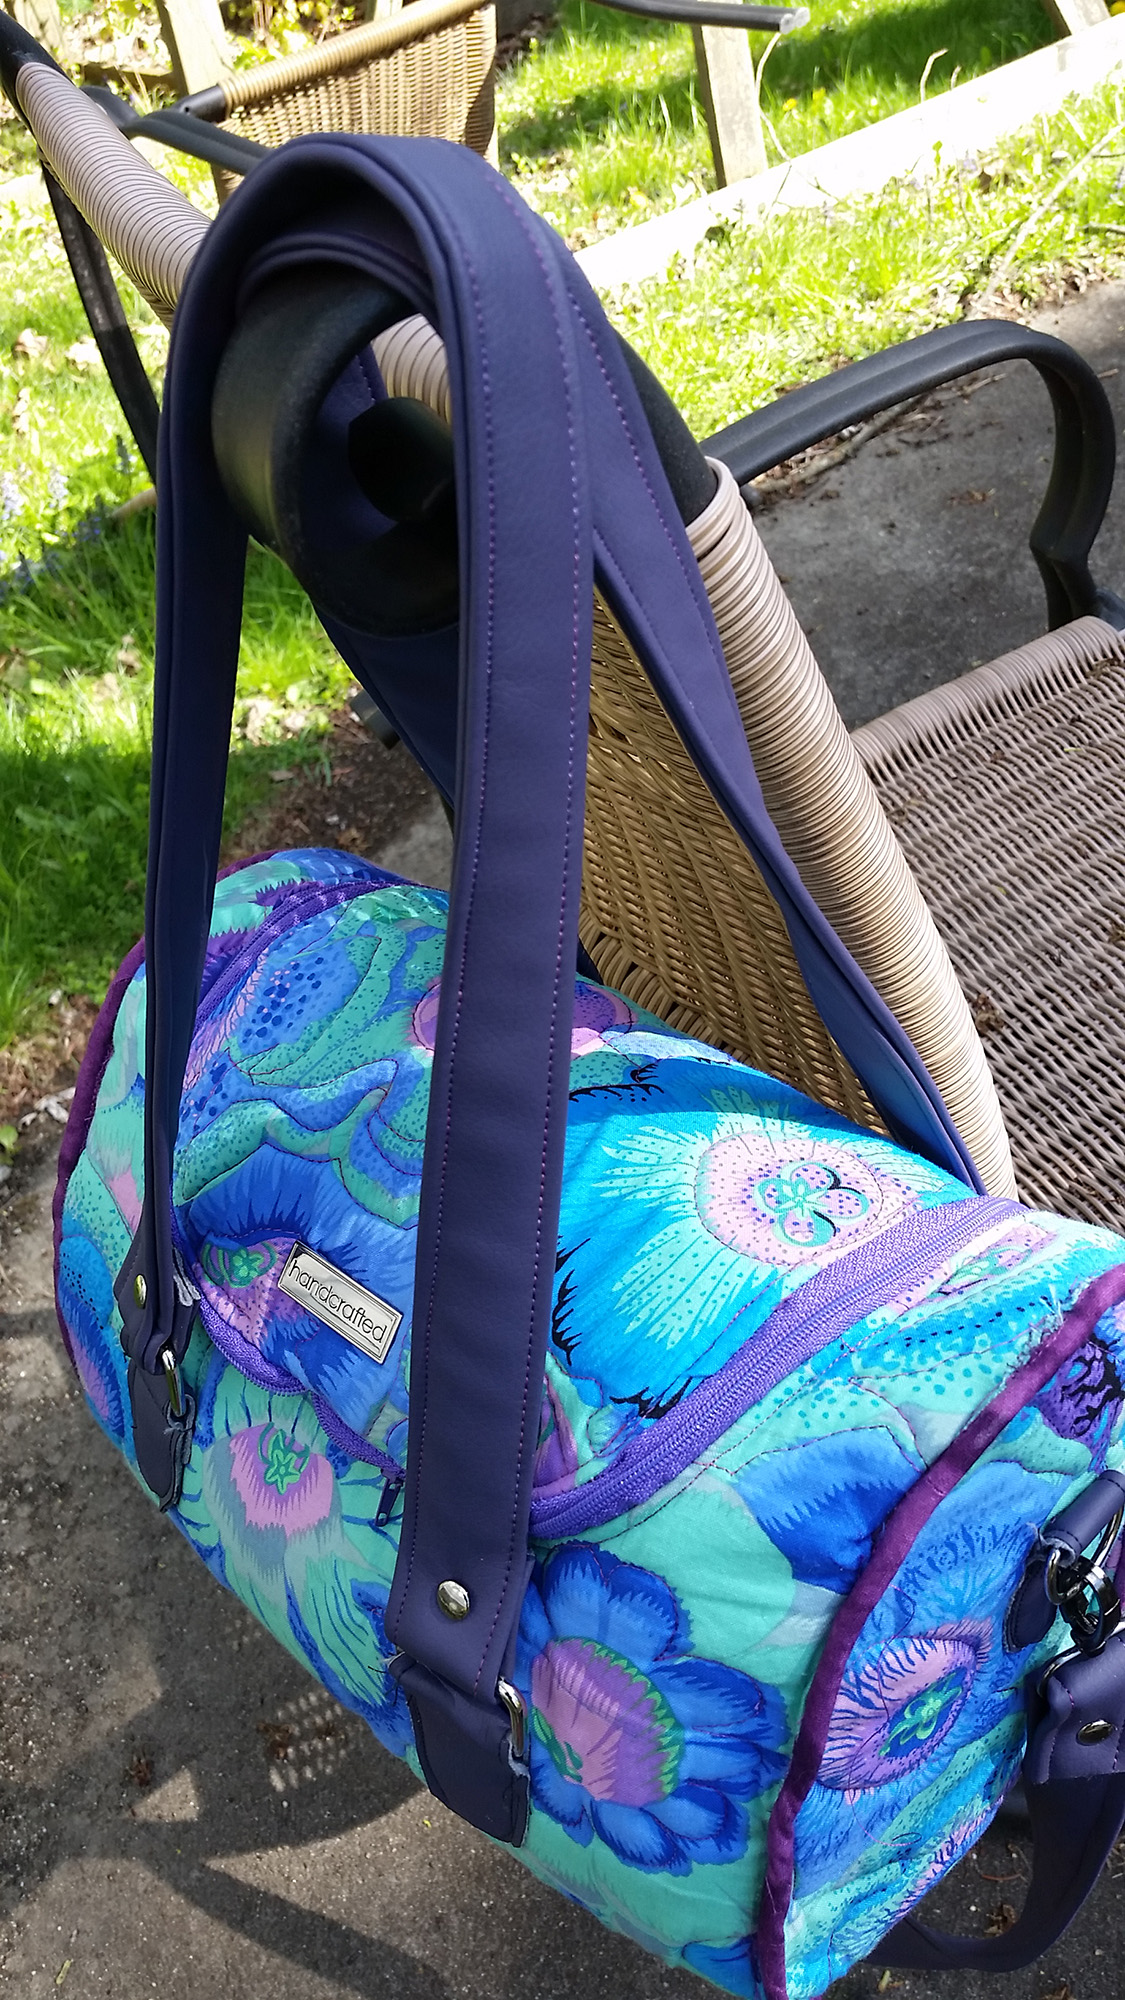 Sew Sweetness Tortoise Bag sewing pattern, sewn by Donna